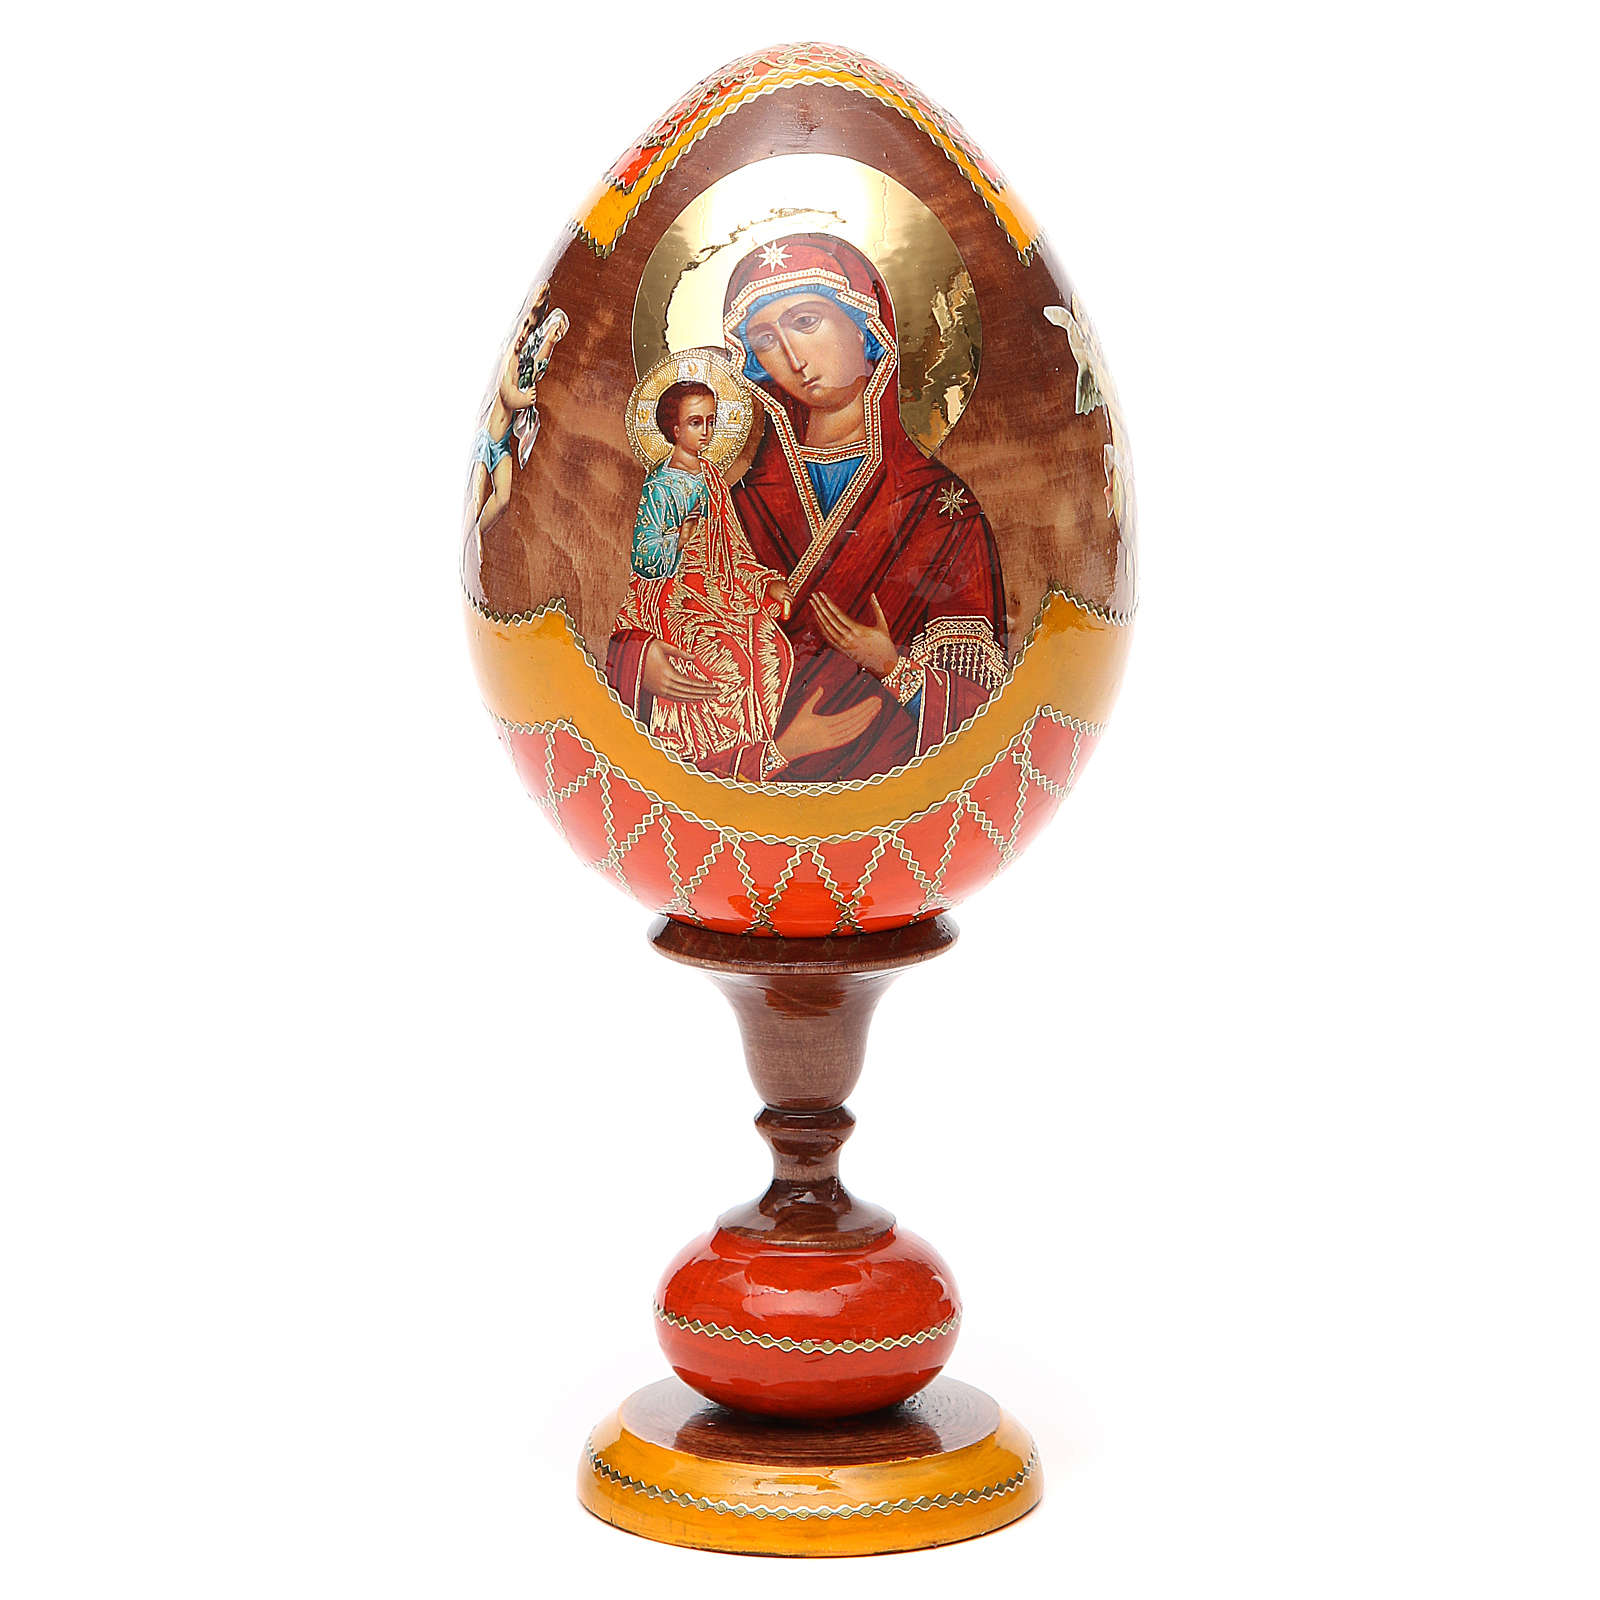 Russian Egg Three Hands Virgin découpage, Fabergè style 20cm 4